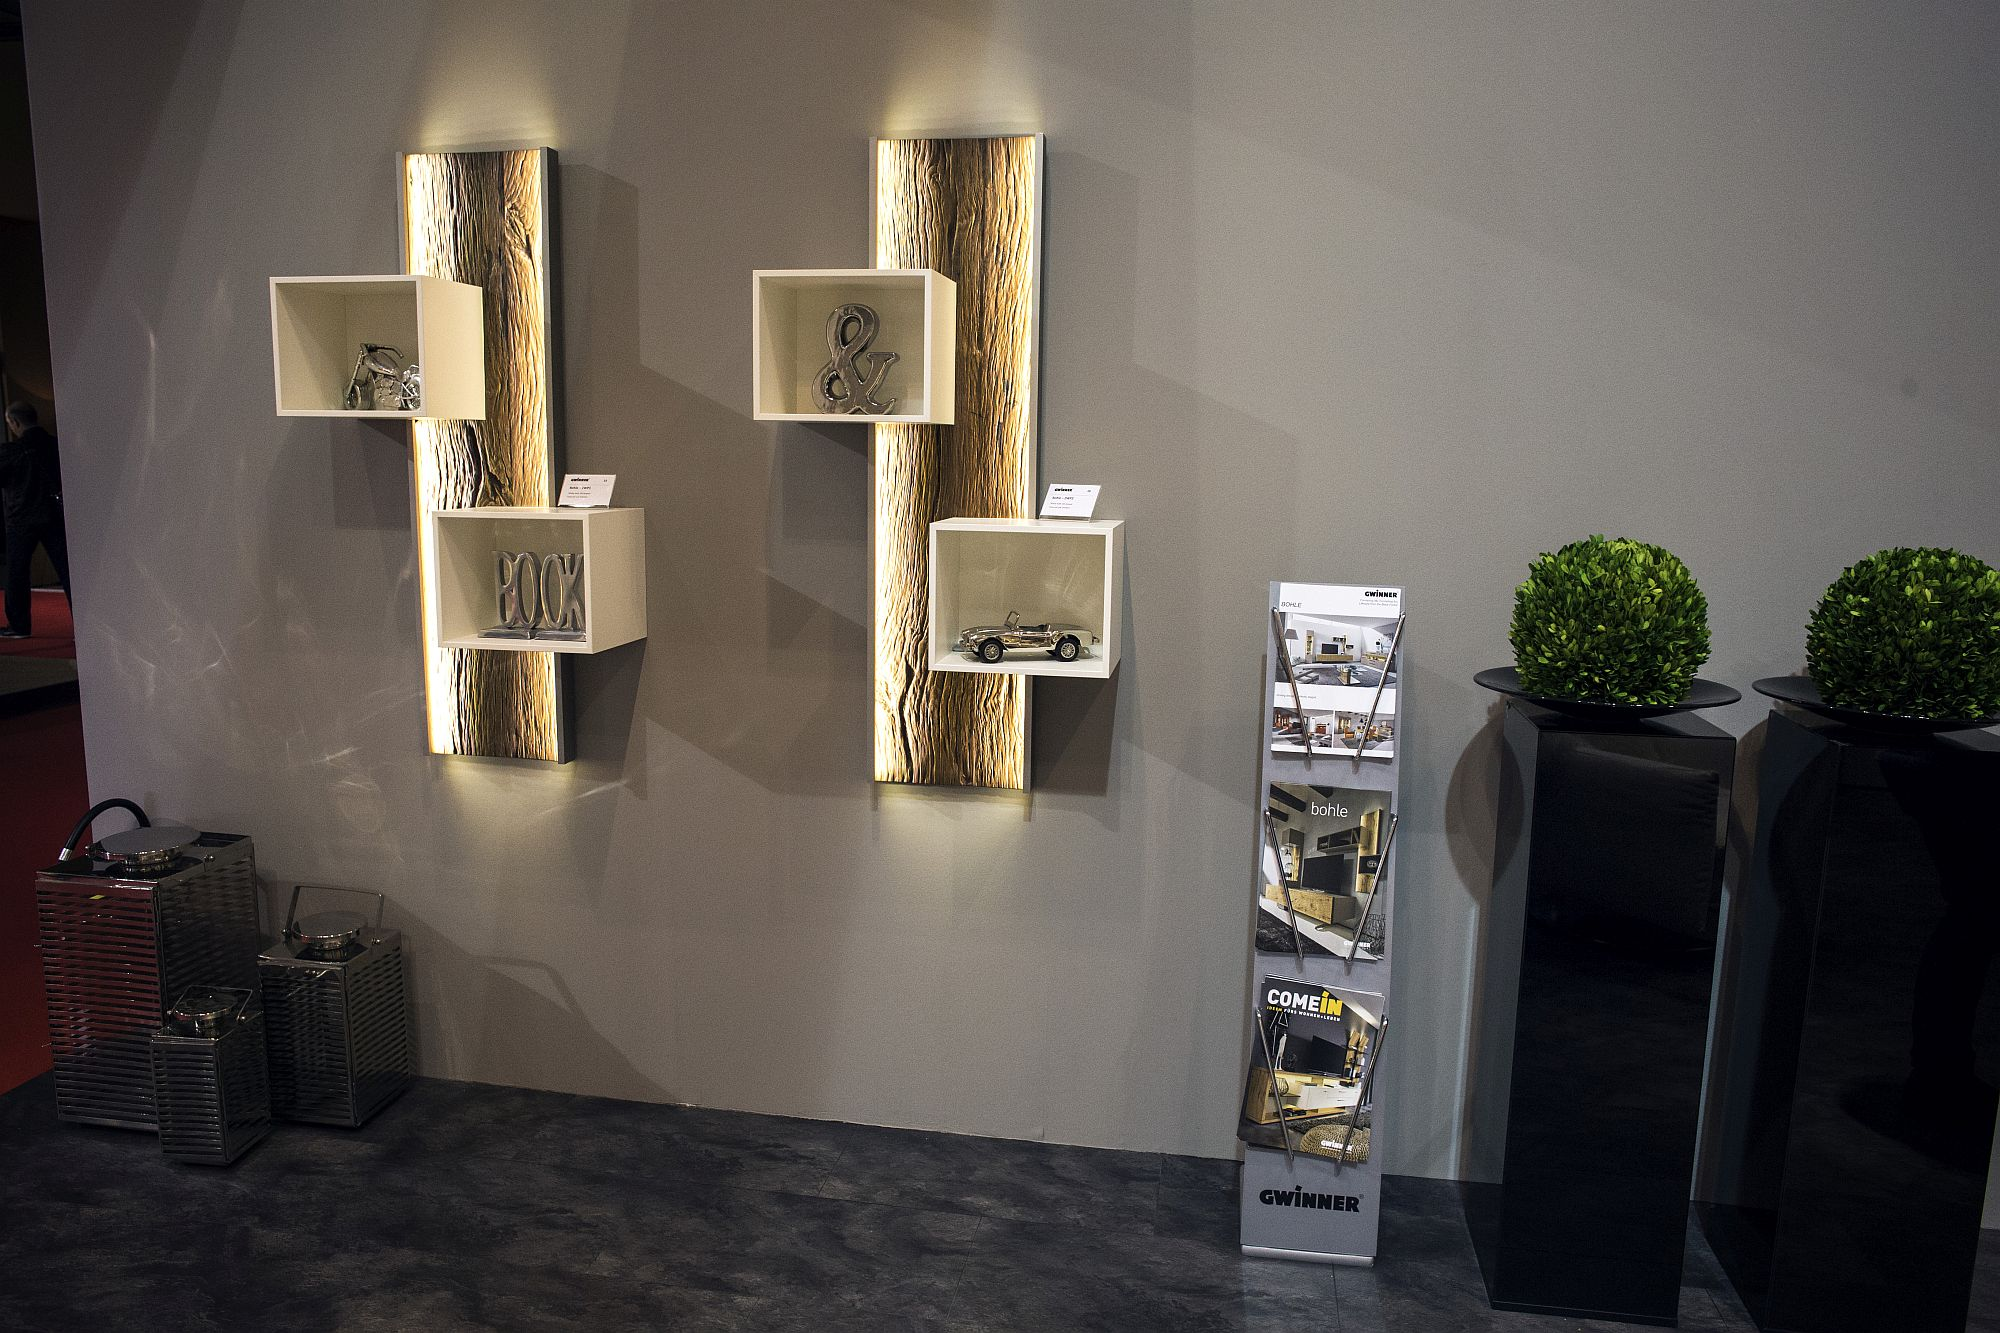 Exquisite-LED-lighting-coupled-with-fashionable-wooden-shelving